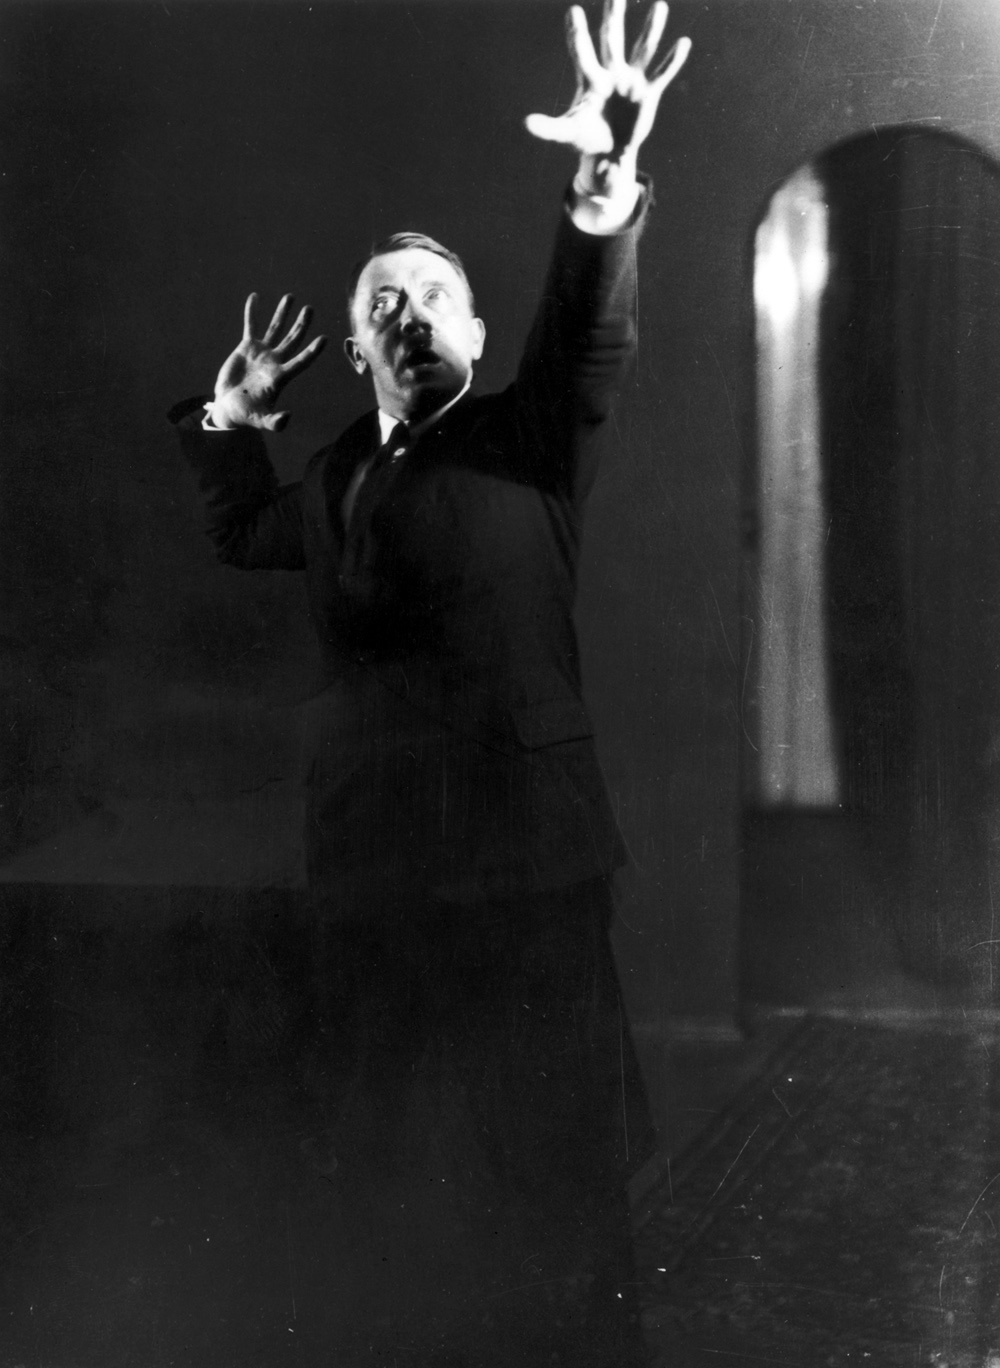 Adolf Hitler practices a speech, 1925. Photography by Heinrich Hoffmann. German Federal Archives, Koblenz, Germany.